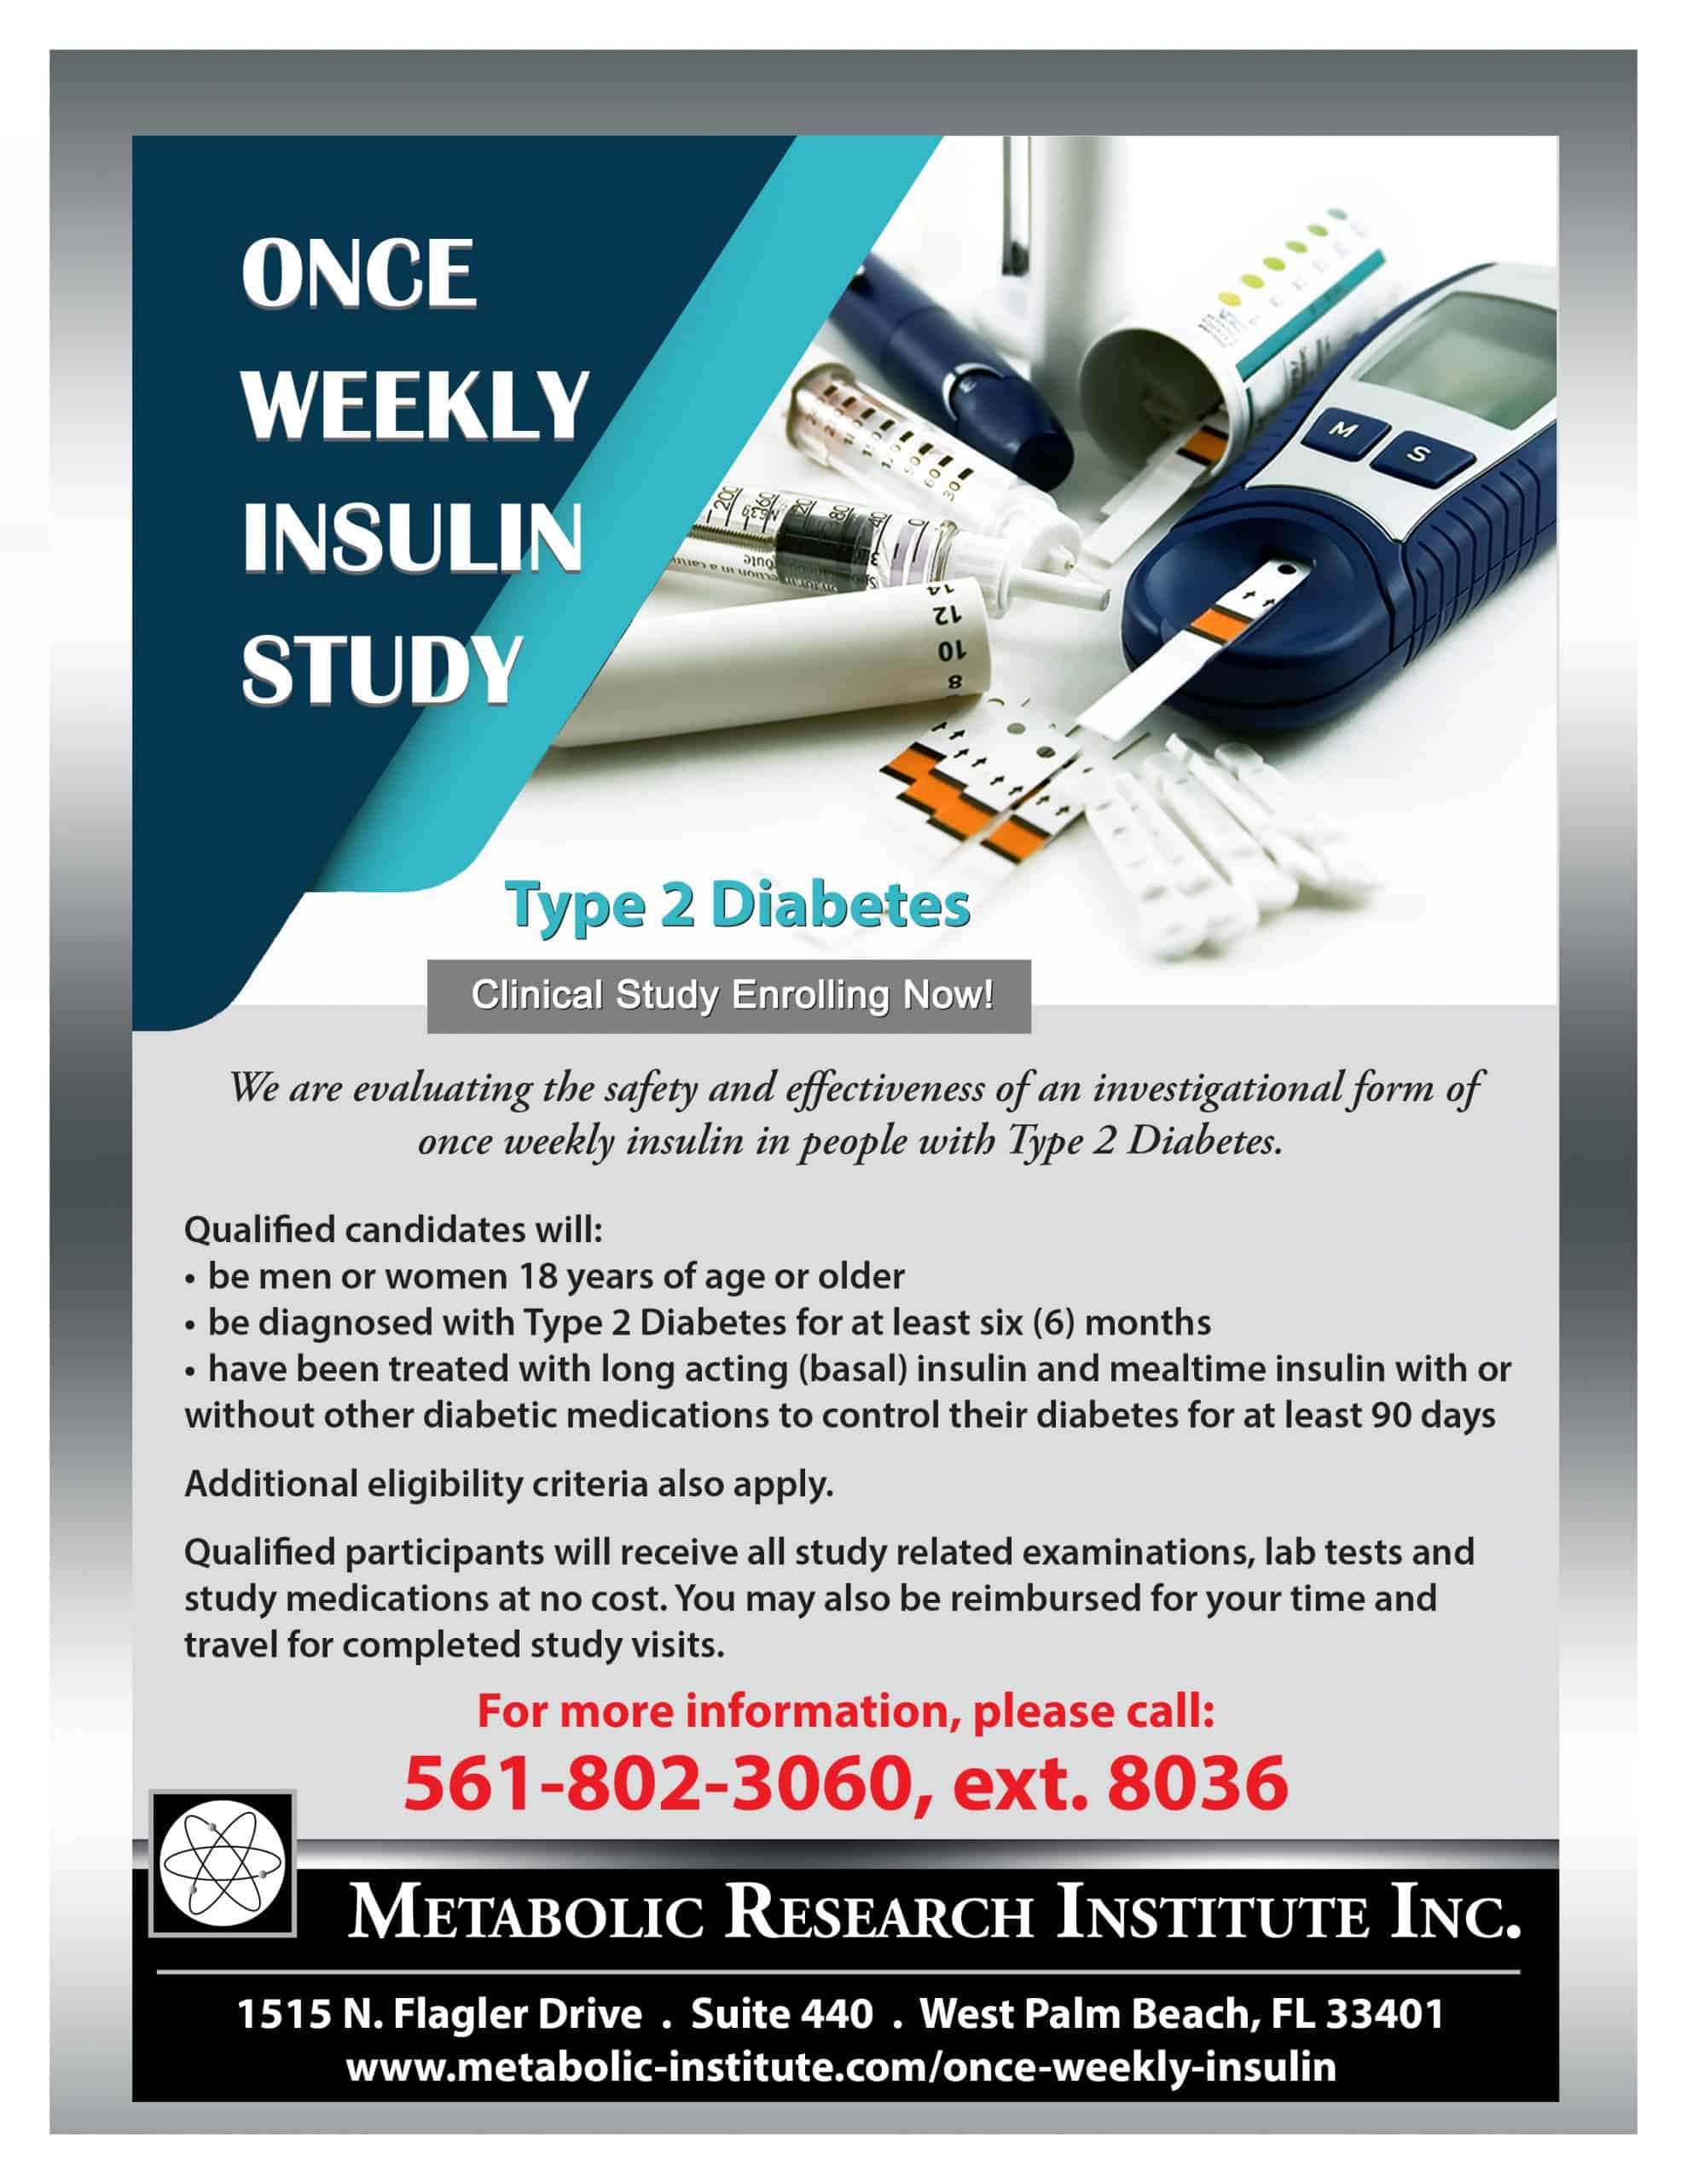 ONce Wekly Insulin for Type 2 Diabetes Study Flyer